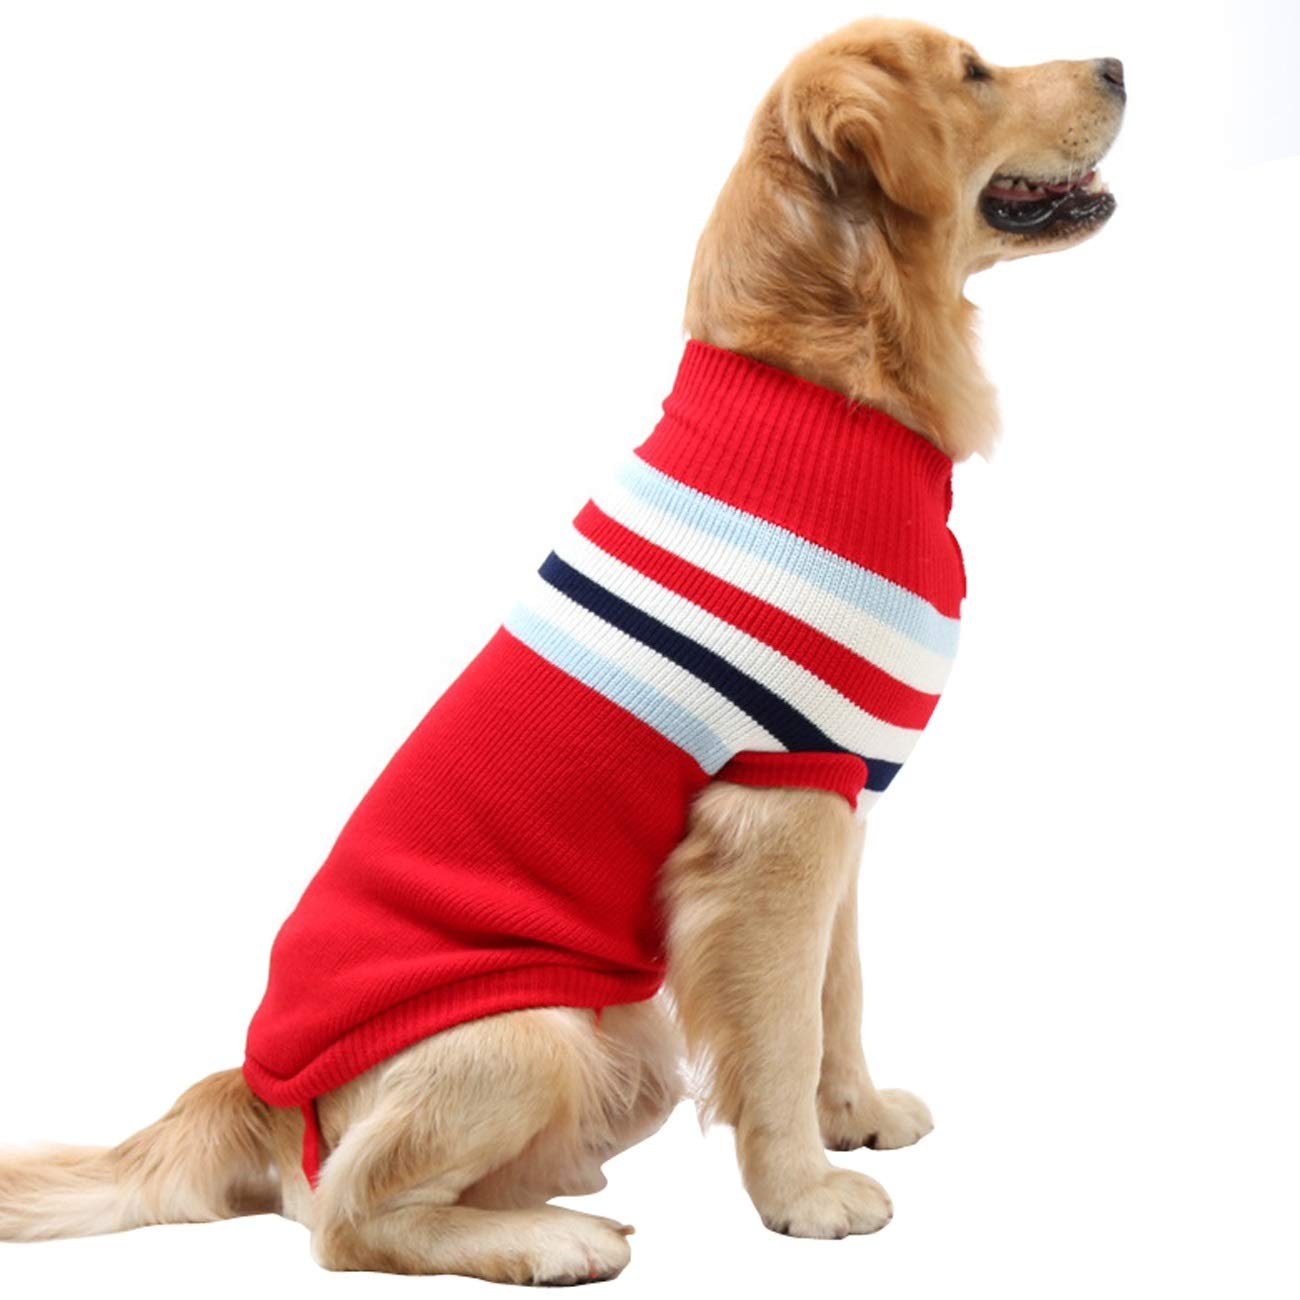 Red XL fit dogs 19.8-33lb Red XL fit dogs 19.8-33lb Dora Bridal Dog Sweater,Stripes Knitwear Tutleneck Dog Apparel,Pet Sweatshirt Clothes Dog Wool Classic Warm Soft Sweaters for Cold Weather, Puppy Warm Winter Coat for Small Medium Large Dogs Red